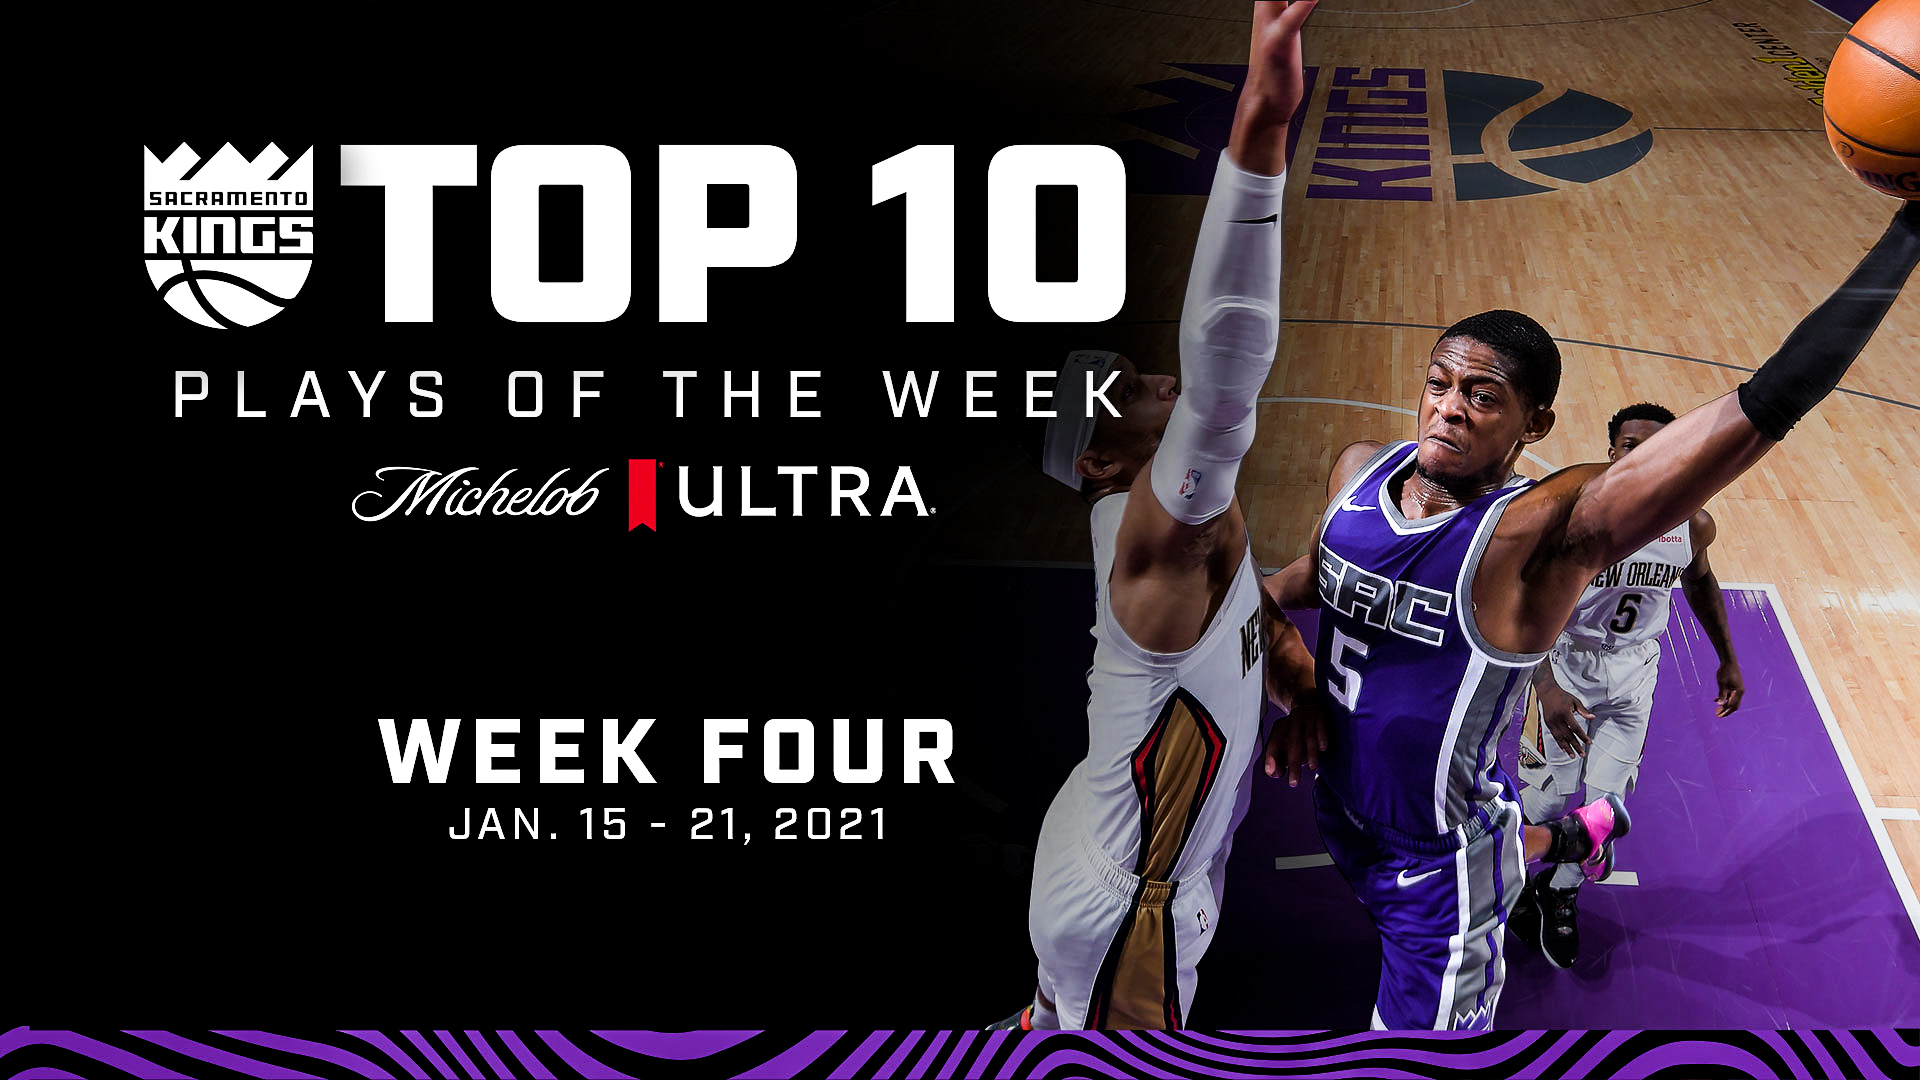 Kings Top 10 Plays of the Week | Week 4